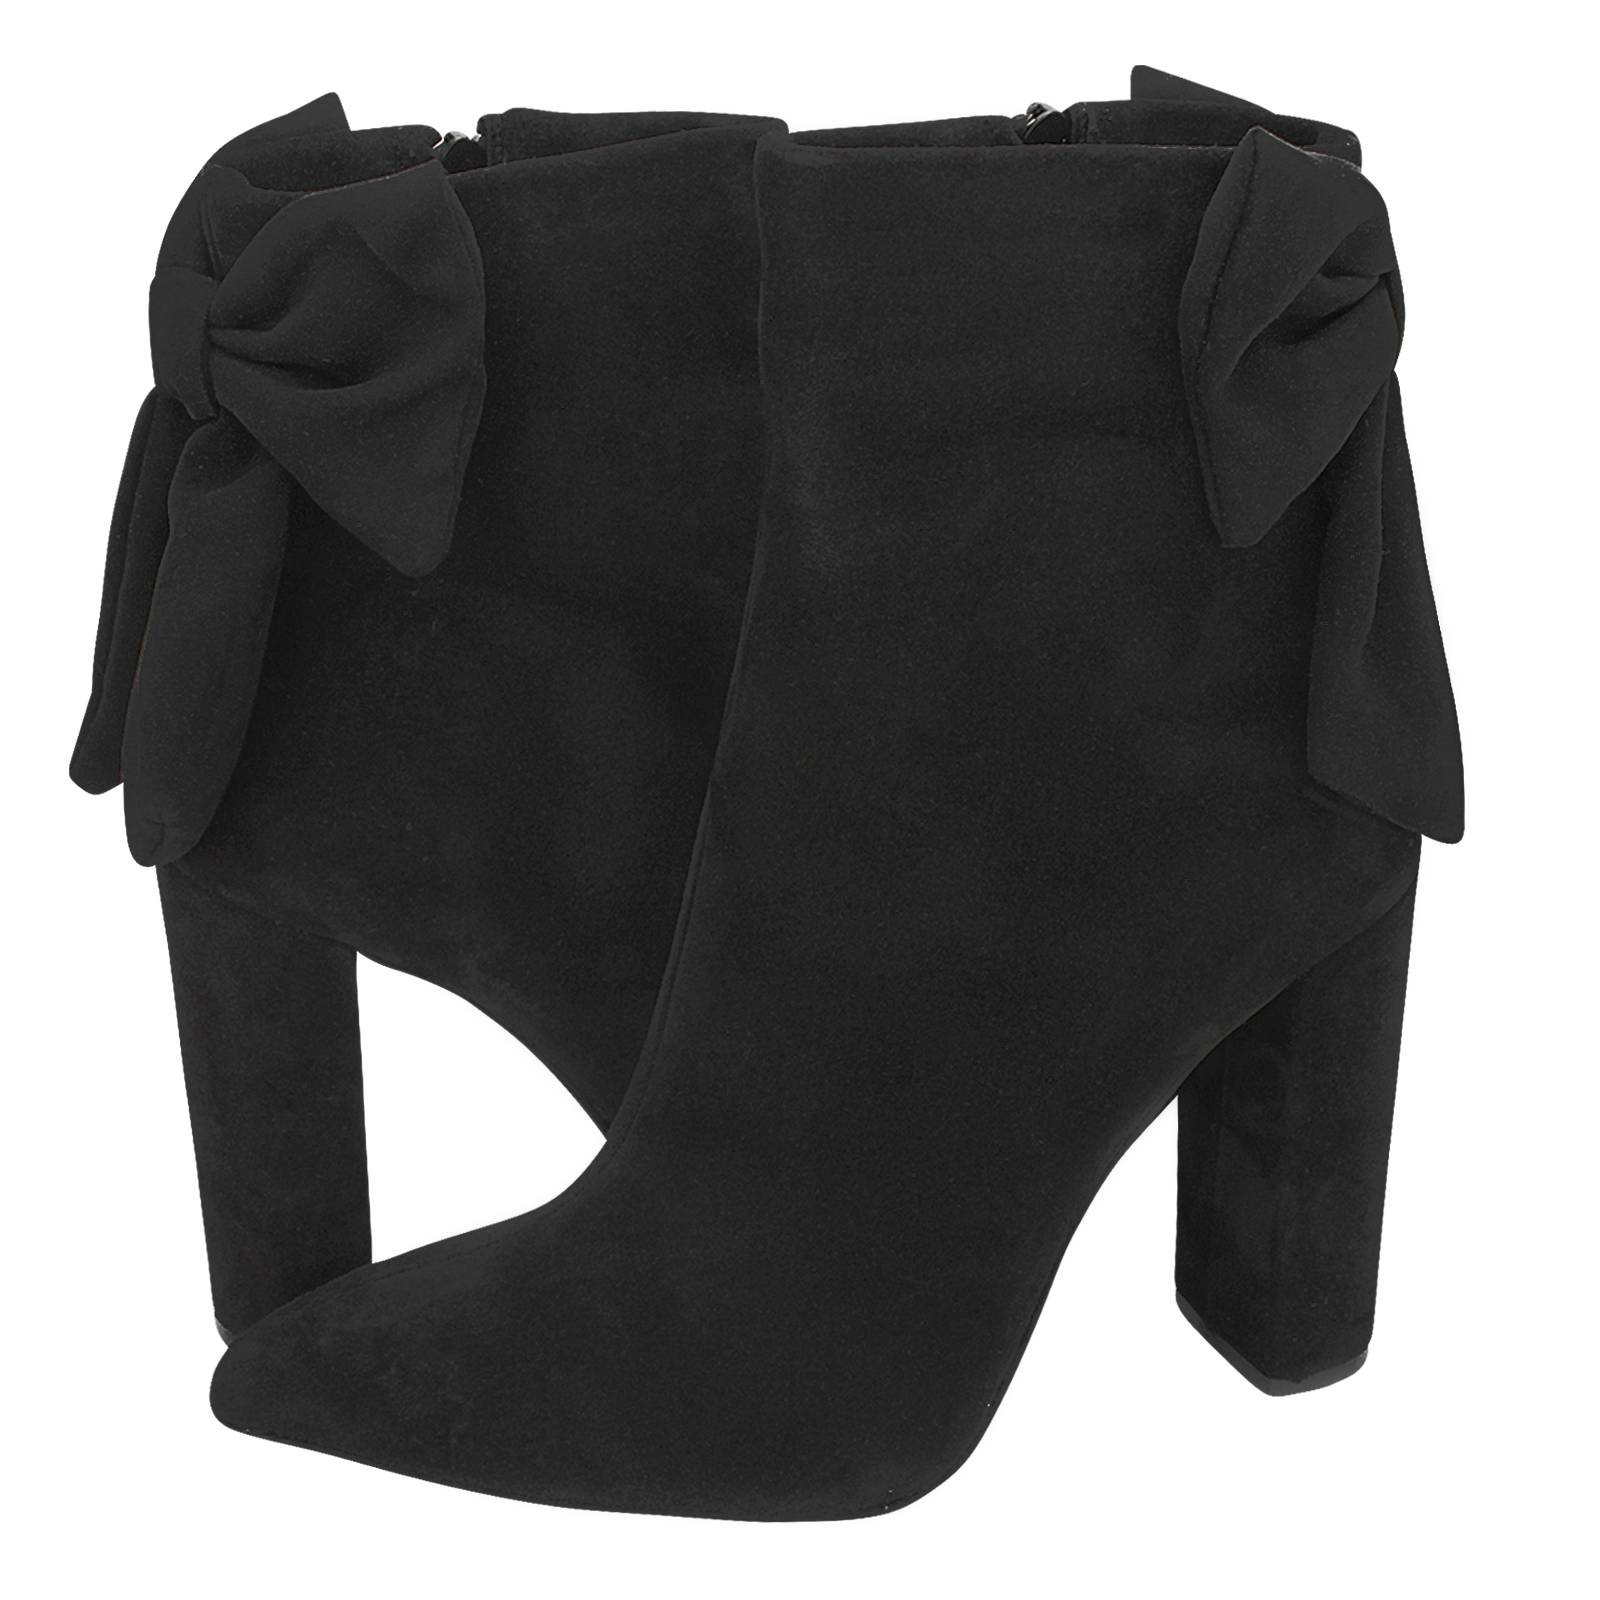 Tincourt - Esthissis Women s low boots made of suede - Gianna ... a91fa2122bc